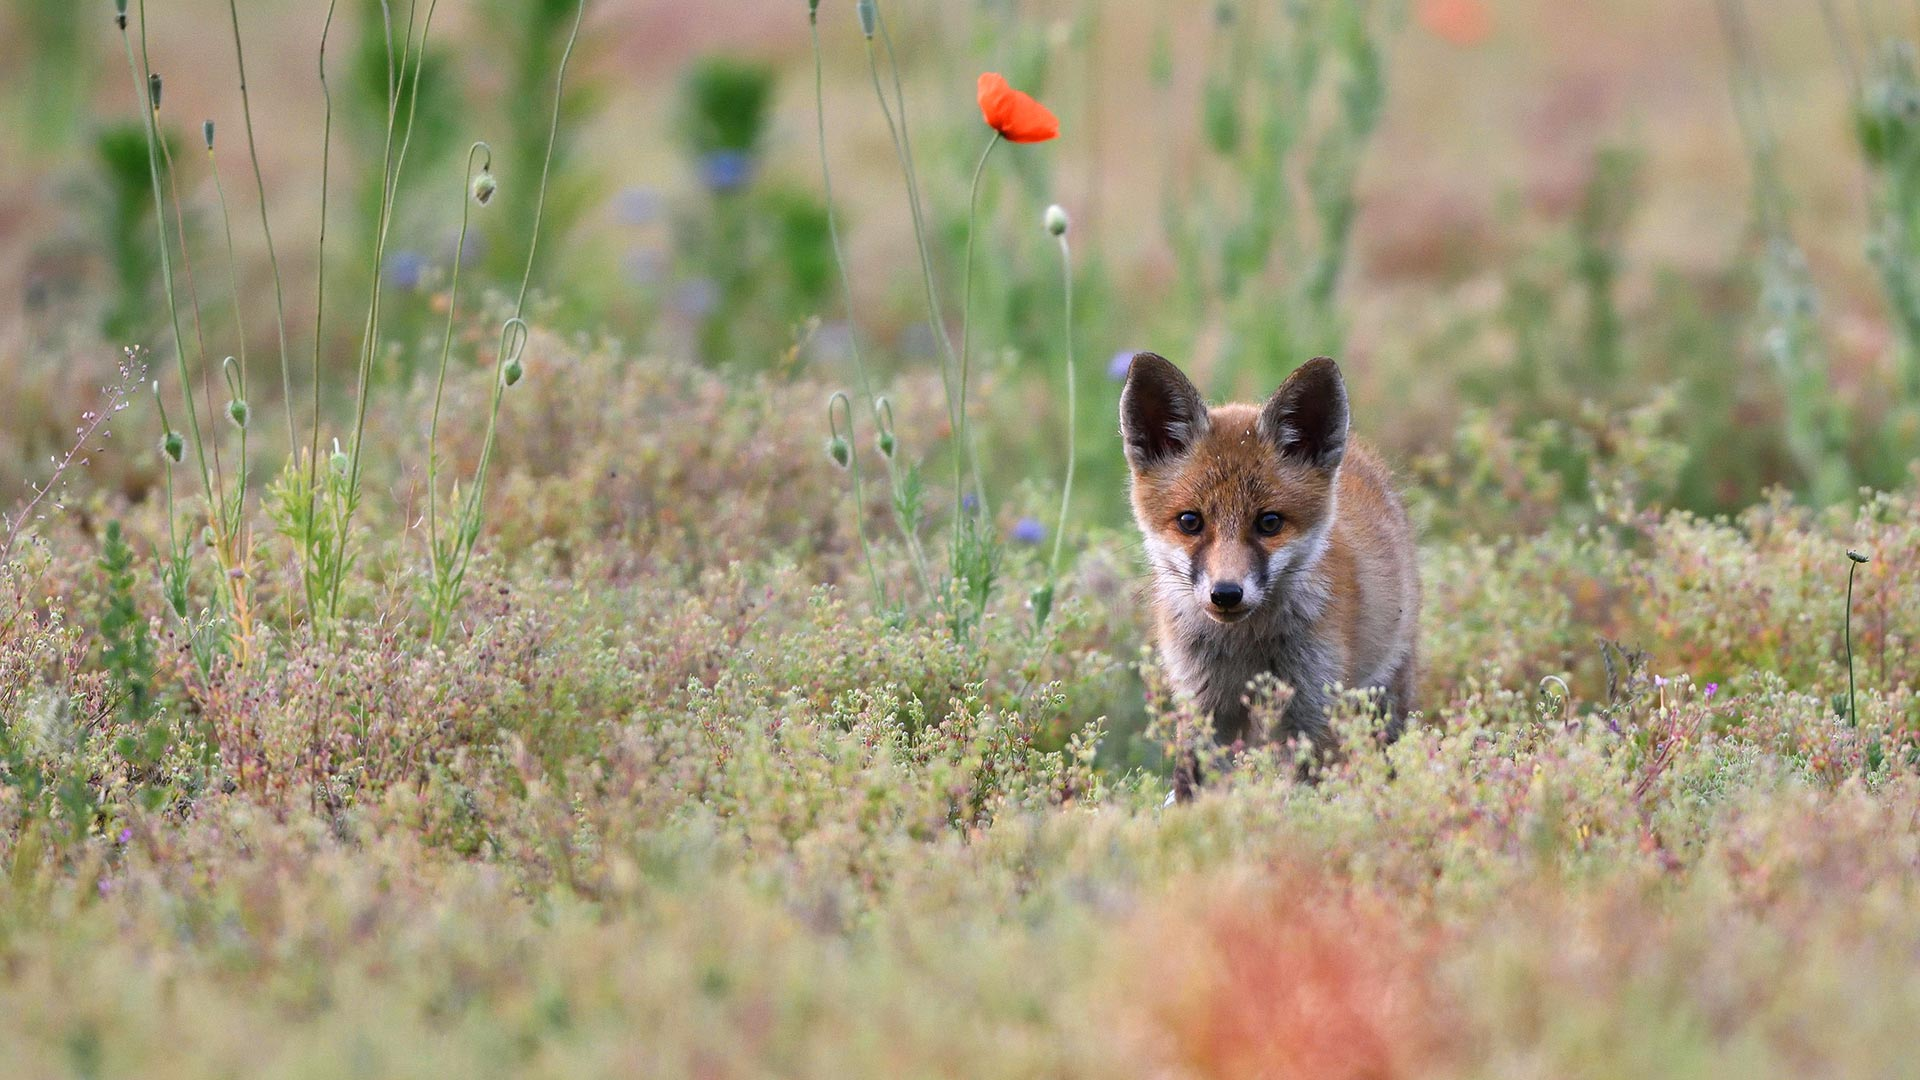 Young red fox with poppies, Lausitz, Saxony, Germany (© Kevin Prönnecke/Alamy)